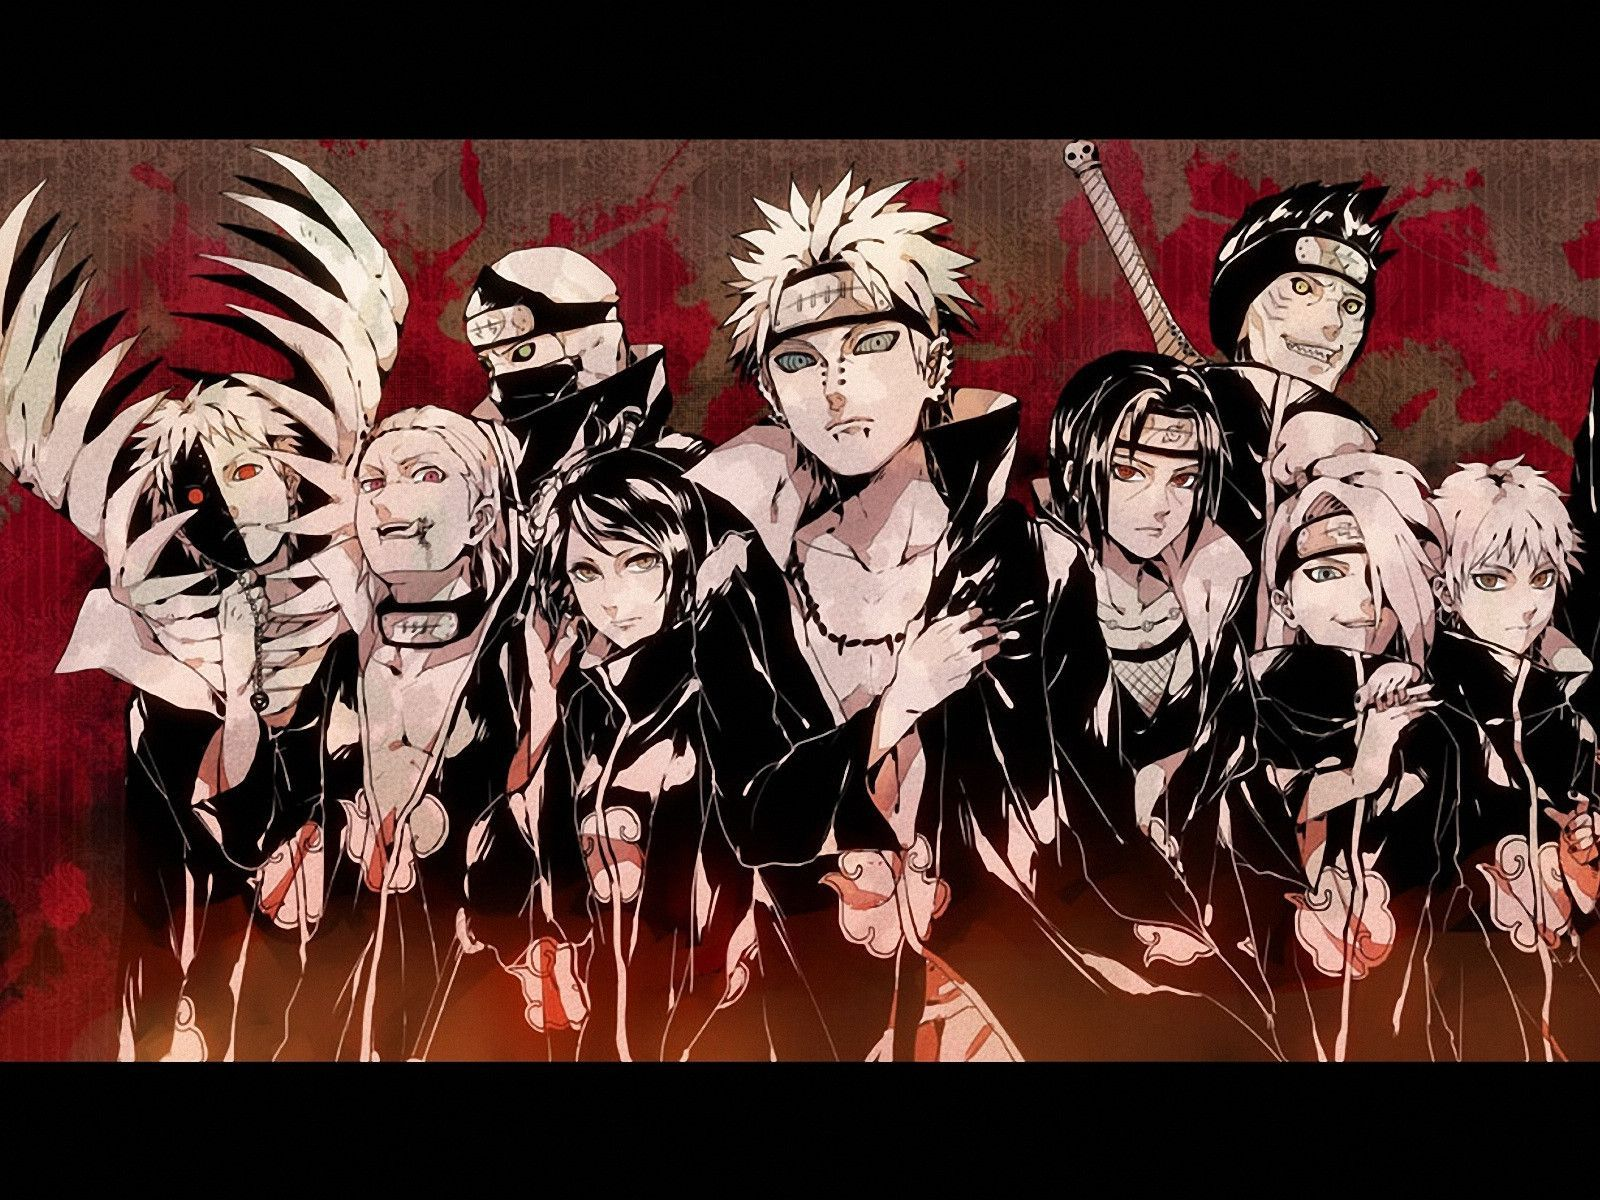 Naruto Wallpapers Collection For Free Download Hd Rh Com Shippuden Live Wallpaper Apk